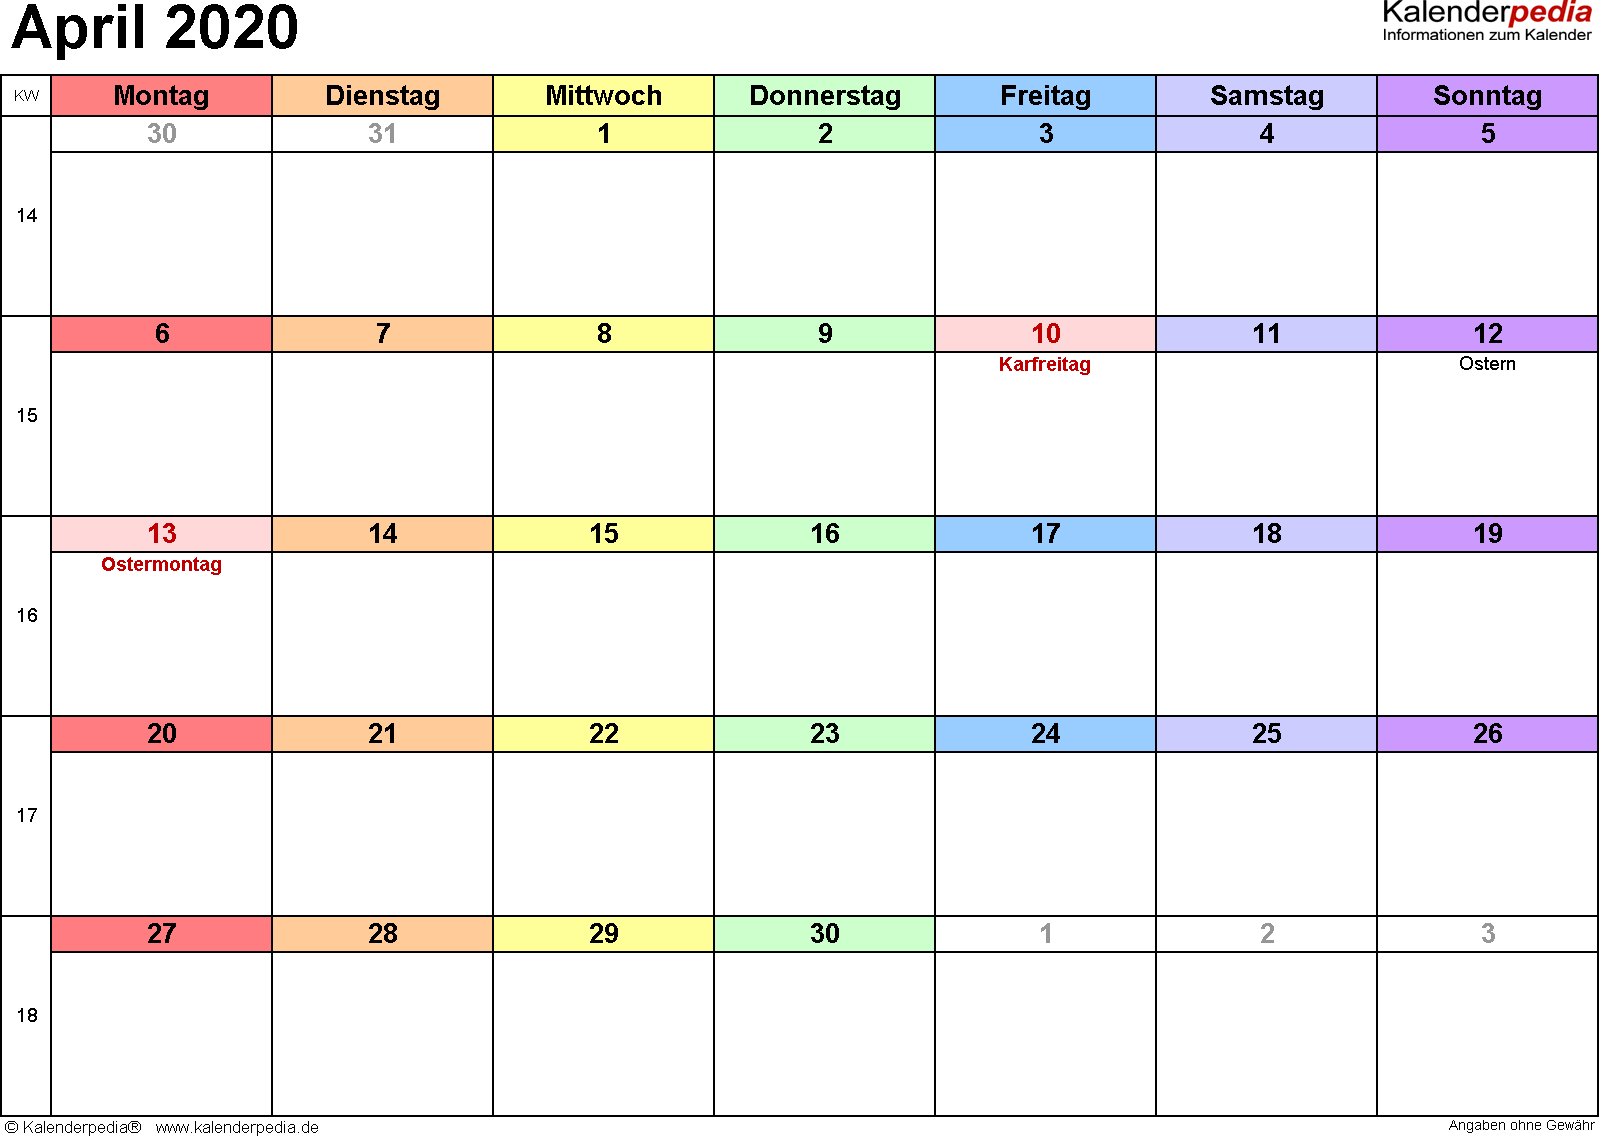 Kalender April 2020 (Querformat) als Excel-Vorlage